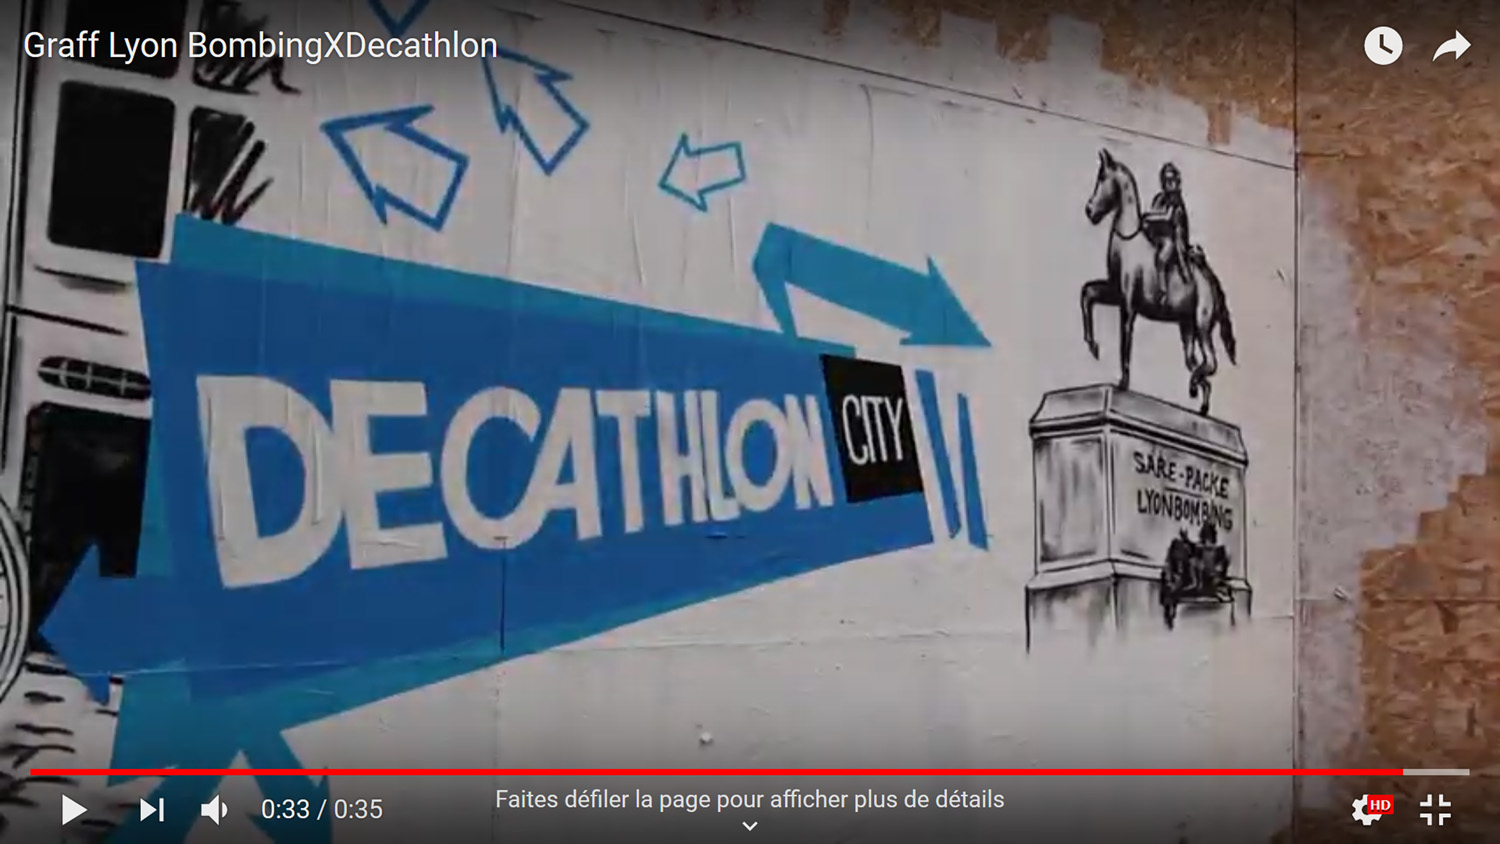 decathlon-fresque-graffiti